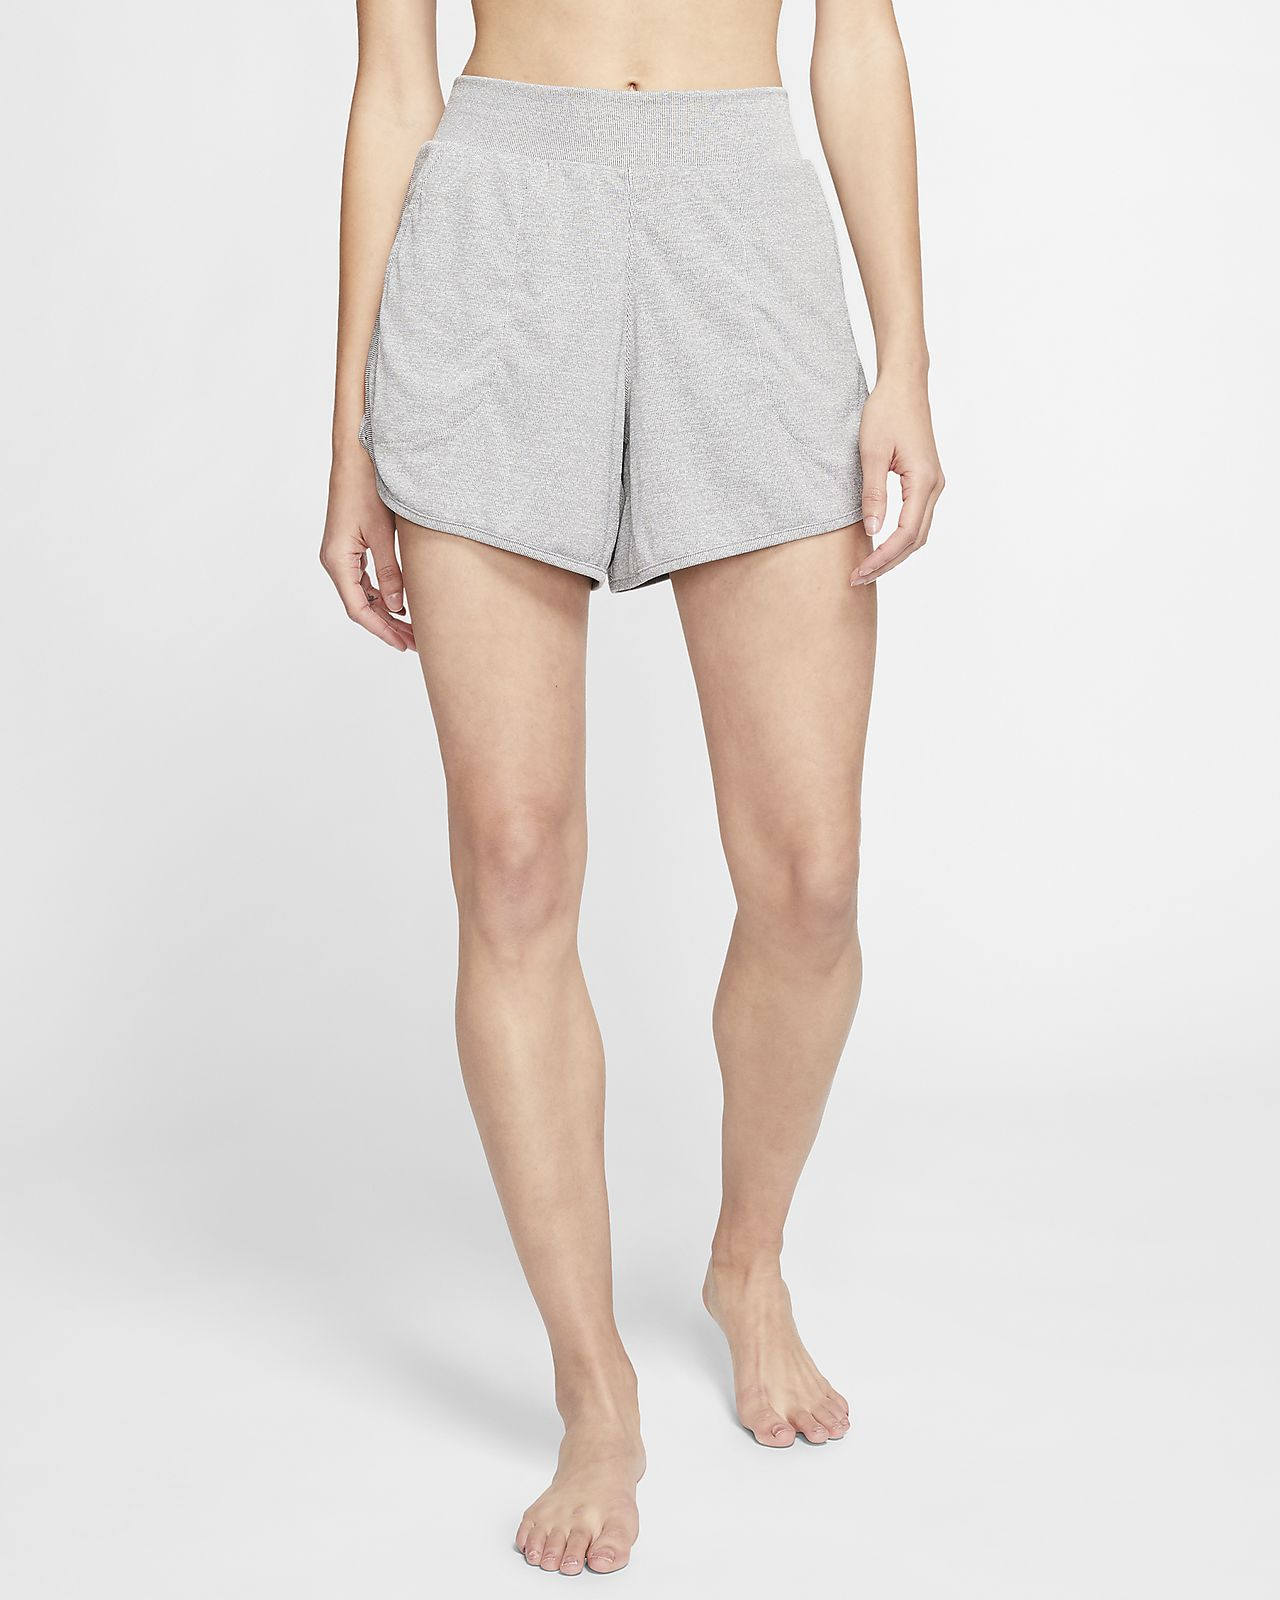 Nike Yoga Women S Ribbed Shorts Nike At